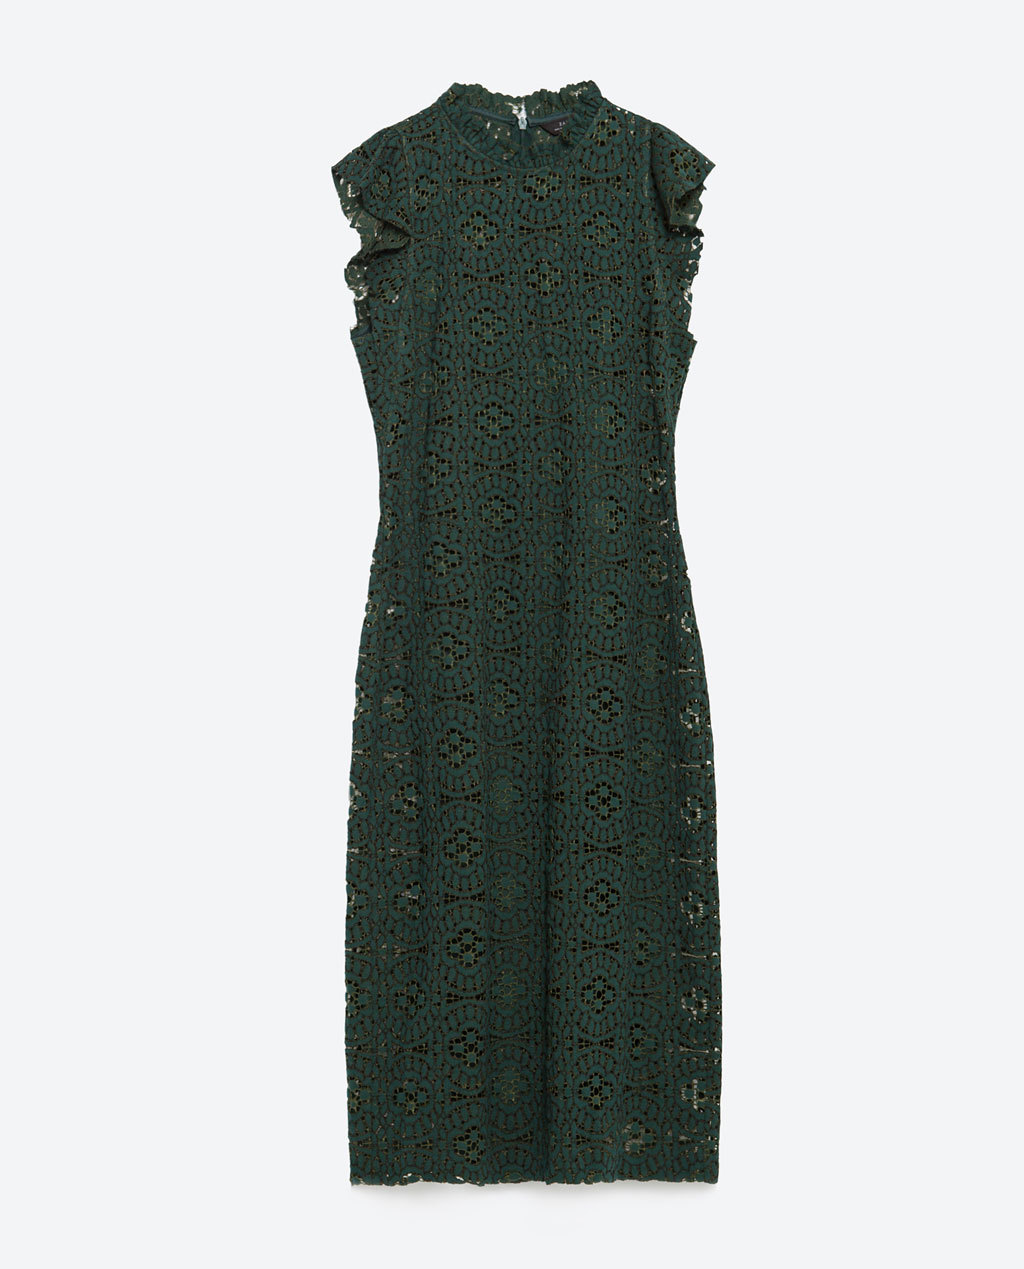 Long Tube Dress - sleeve style: capped; fit: tight; neckline: high neck; style: bodycon; predominant colour: dark green; occasions: evening, occasion, creative work; length: on the knee; fibres: cotton - mix; sleeve length: sleeveless; texture group: lace; pattern type: fabric; pattern size: standard; pattern: patterned/print; season: a/w 2015; wardrobe: highlight